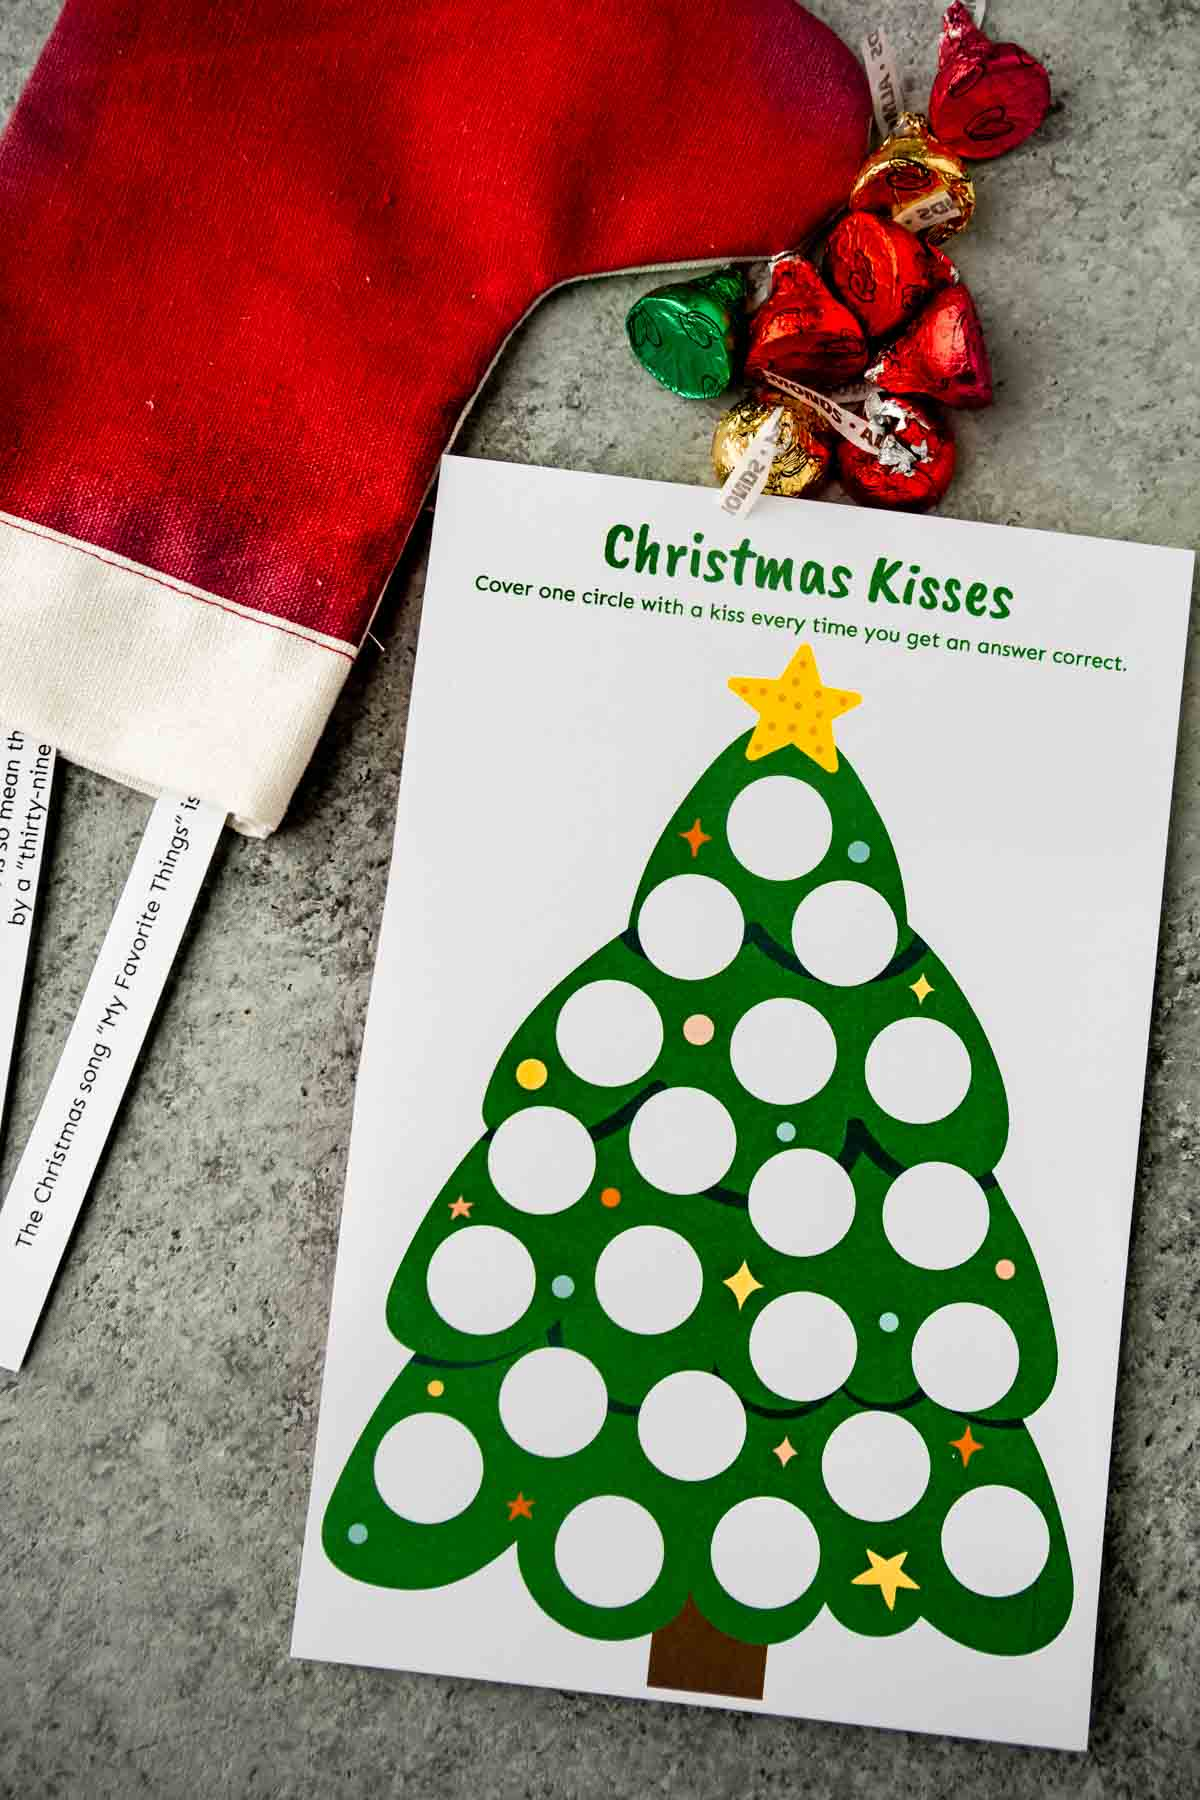 Printed out Christmas trivia game card with questions nearby